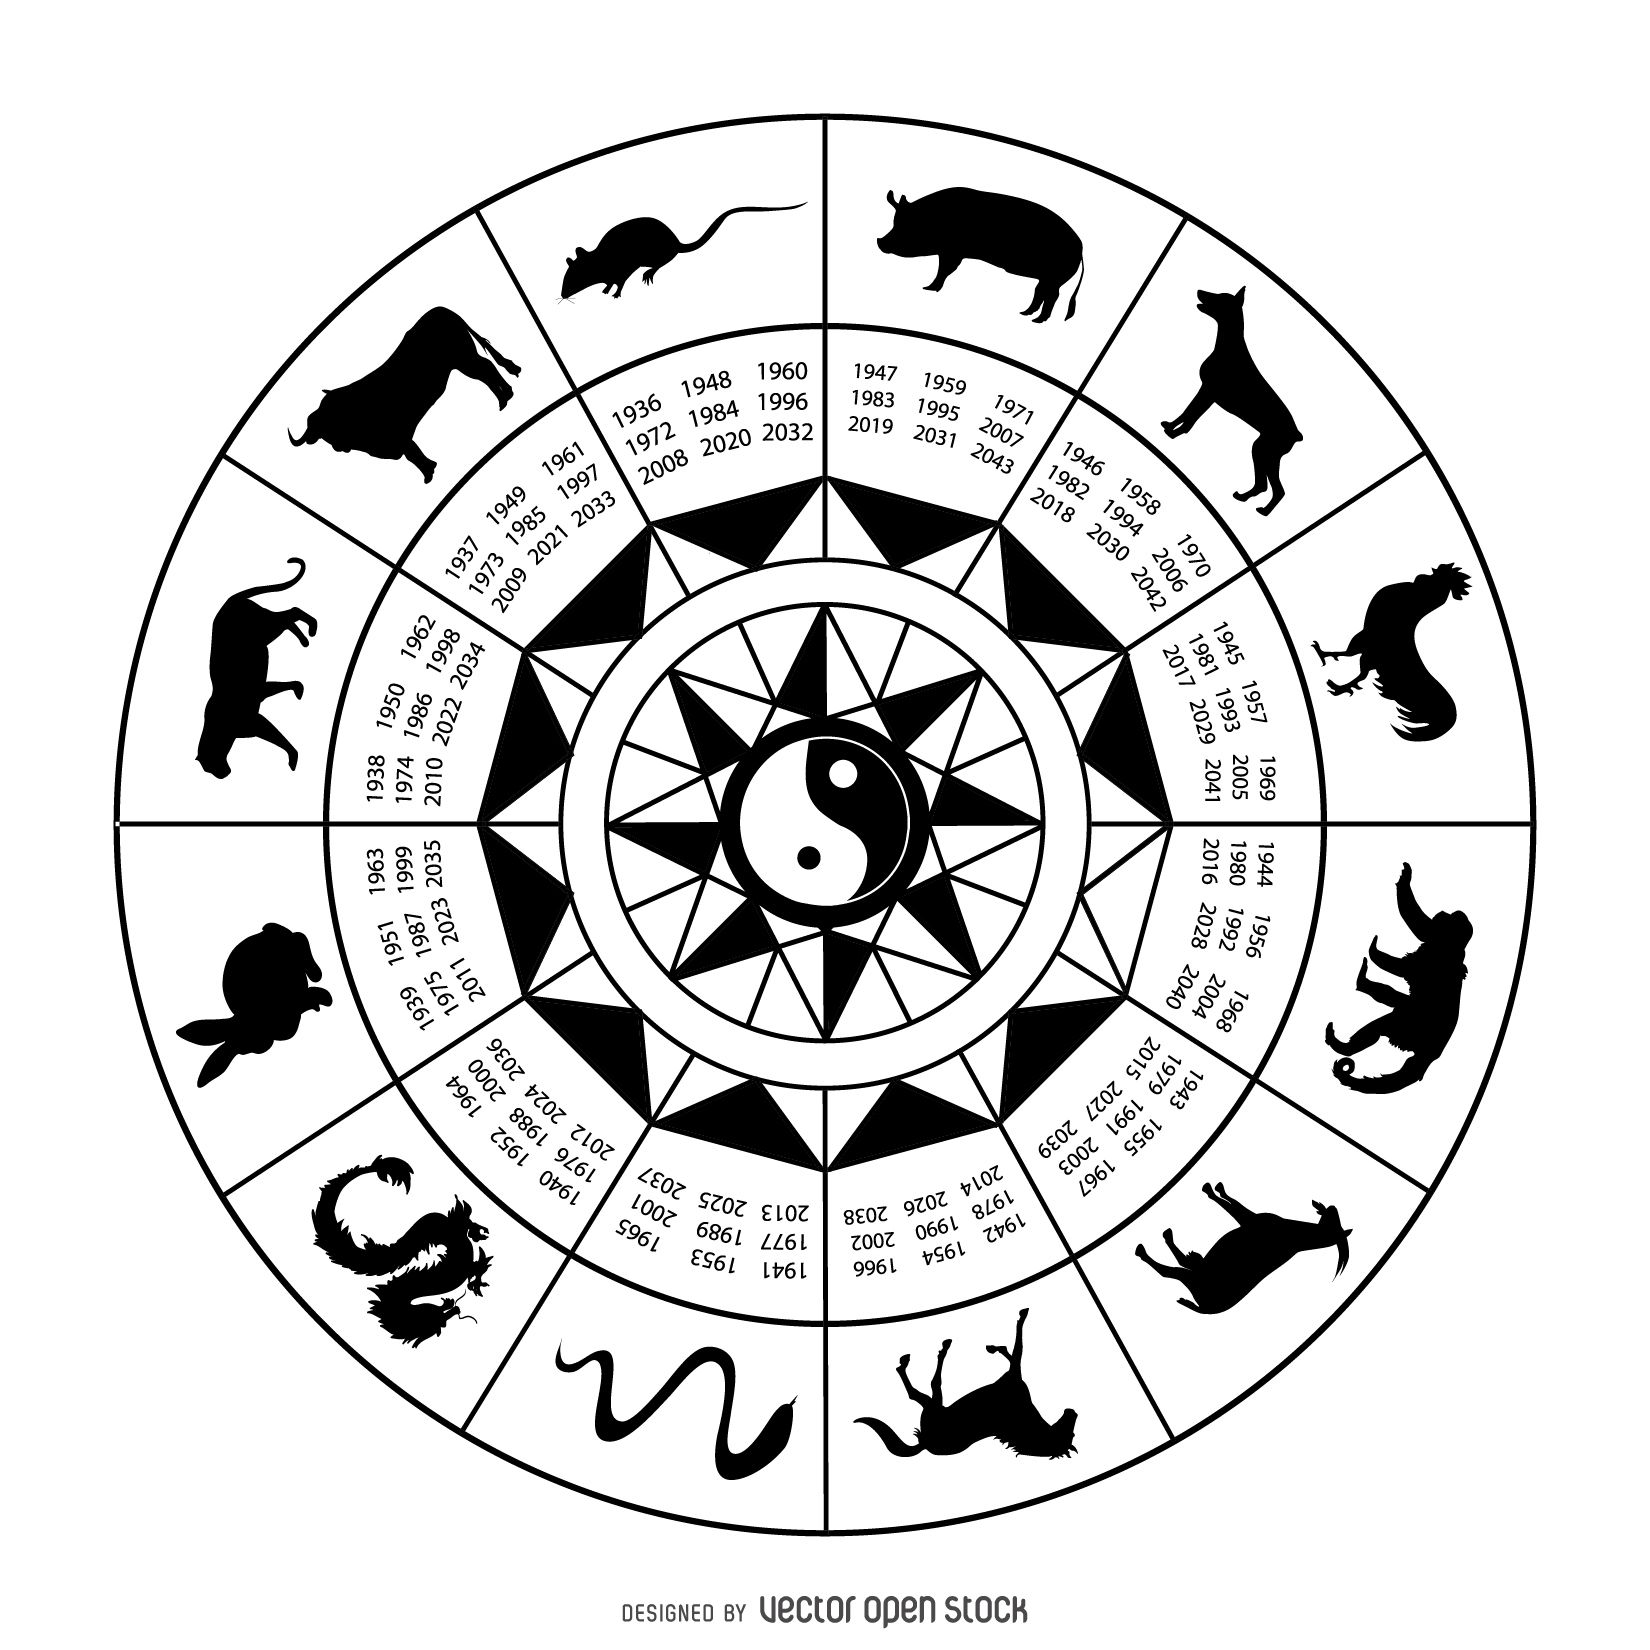 Chinese zodiac circle with animals horoscopes and zodiac symbols chinese zodiac circle with animals buycottarizona Image collections